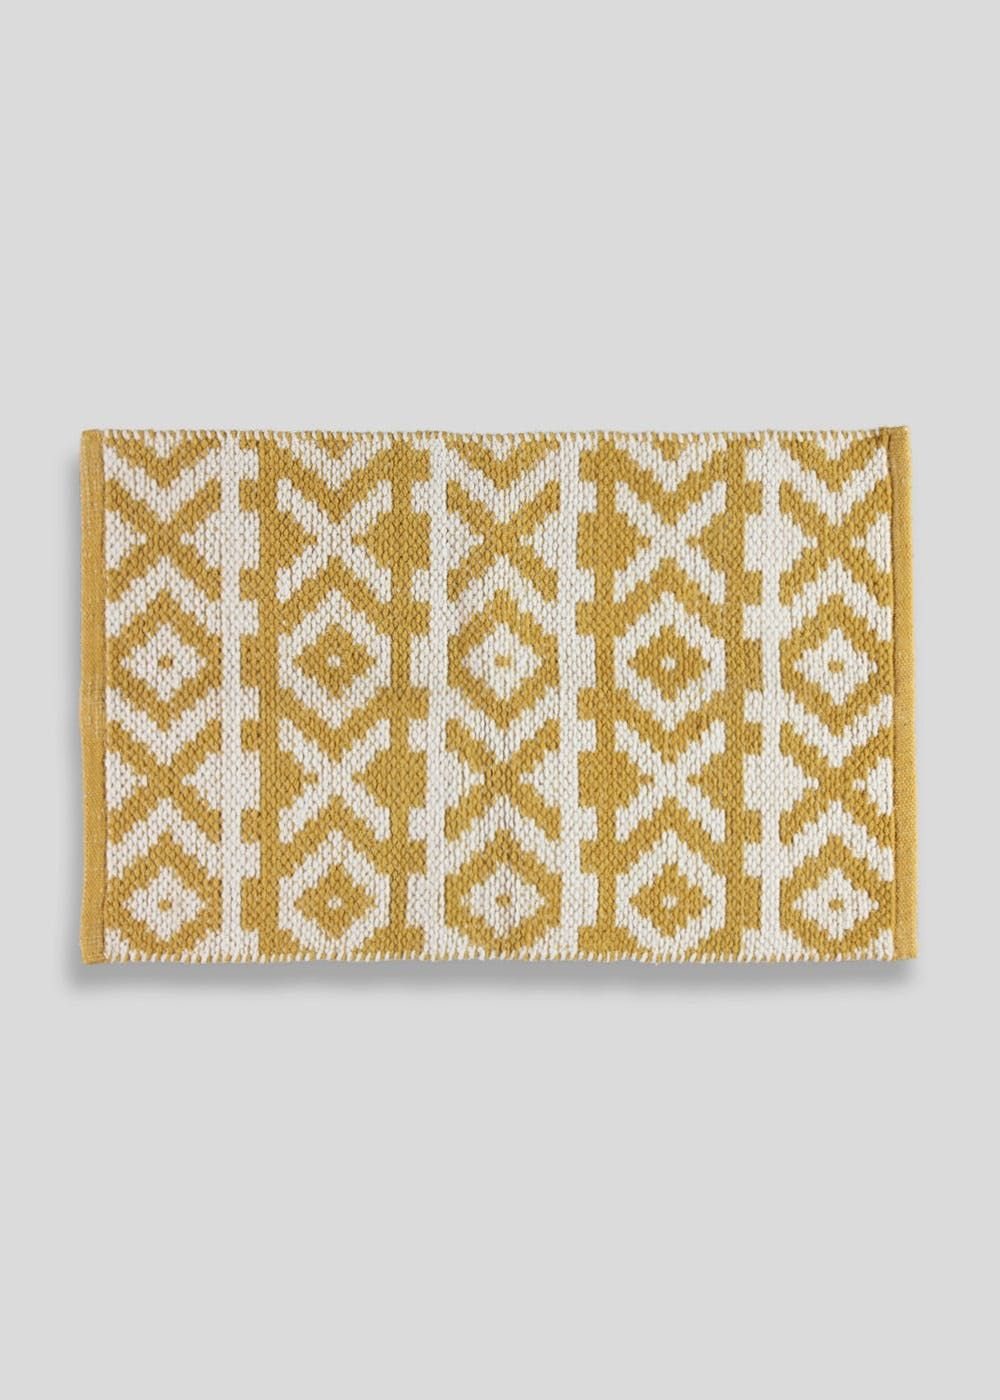 Geometric Bath Mat 80cm X 50cm Mustard In 2020 Bath Mat